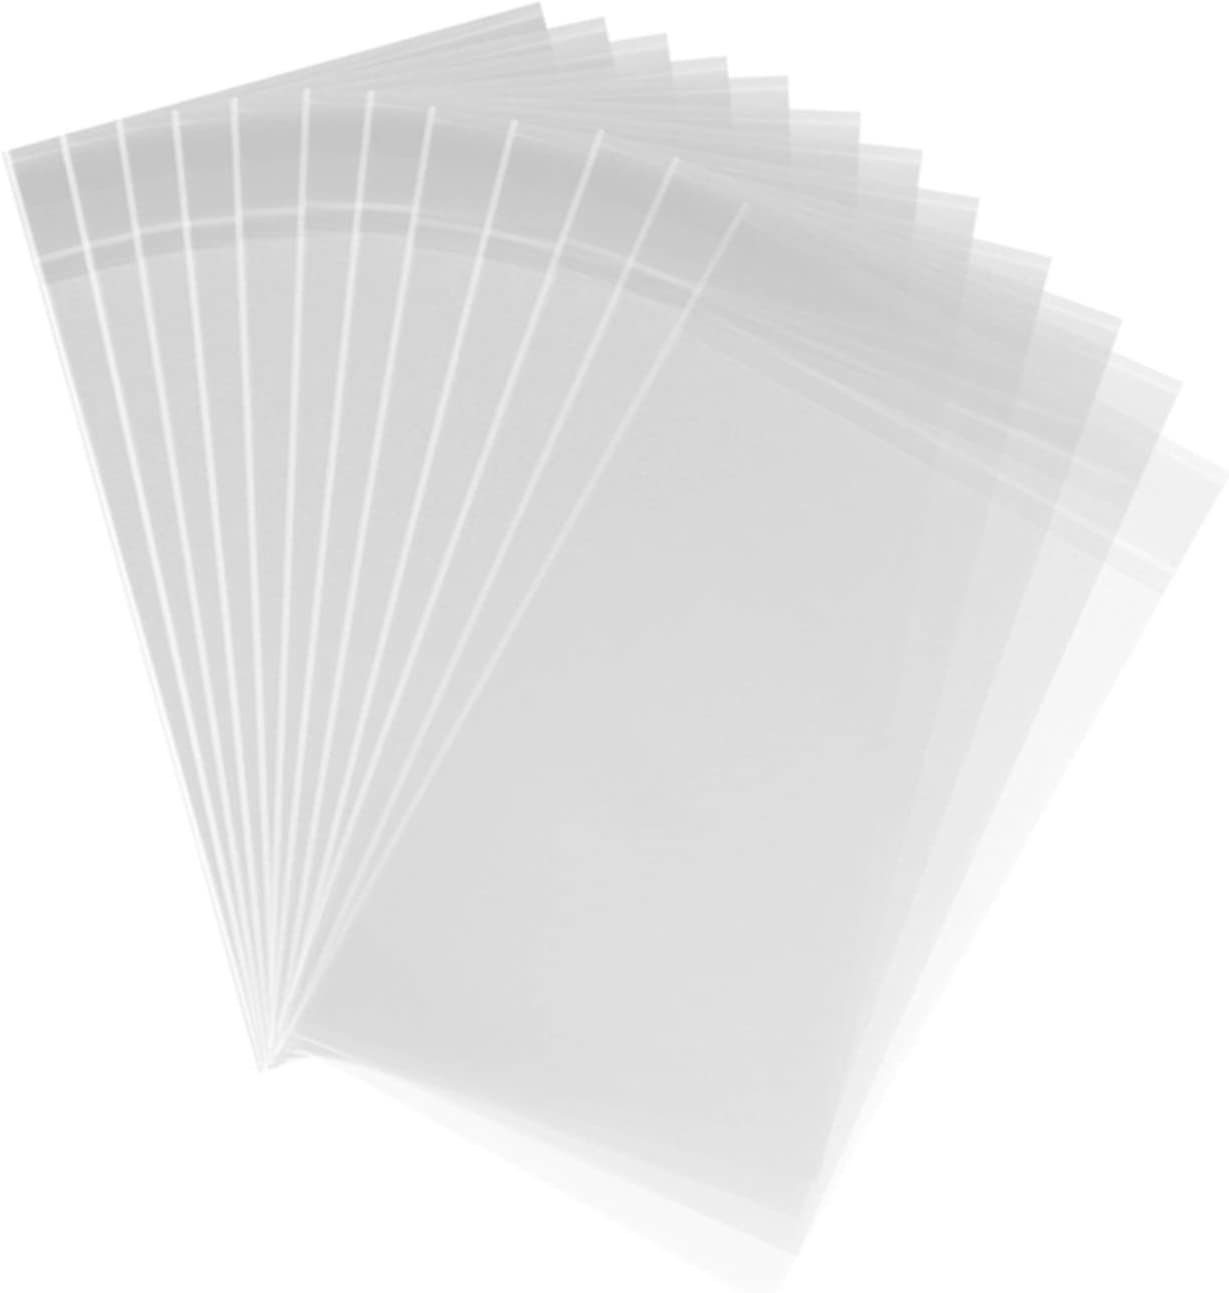 1000ct Clear Plastic Cello Cellophane Bags Self Sealing in Bulk for Bakery Cookies Goodies Favor Candle Decorative Wrappers (4'' x 6'')